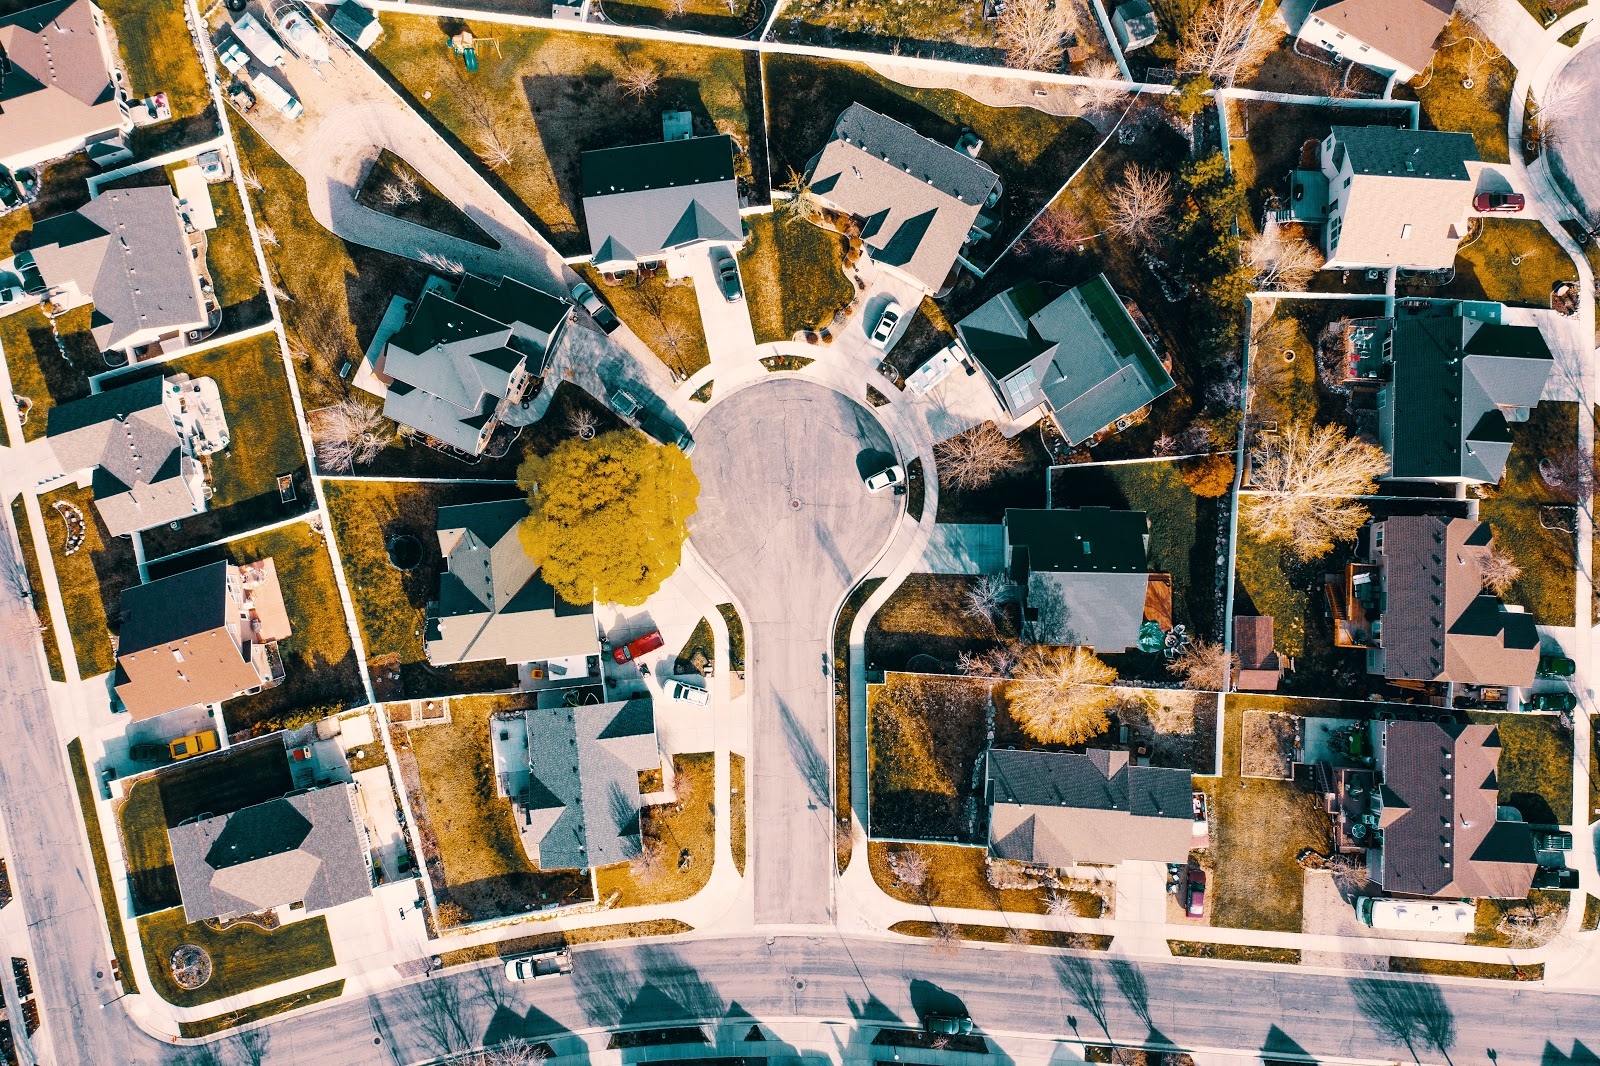 Arial view of a neighborhood